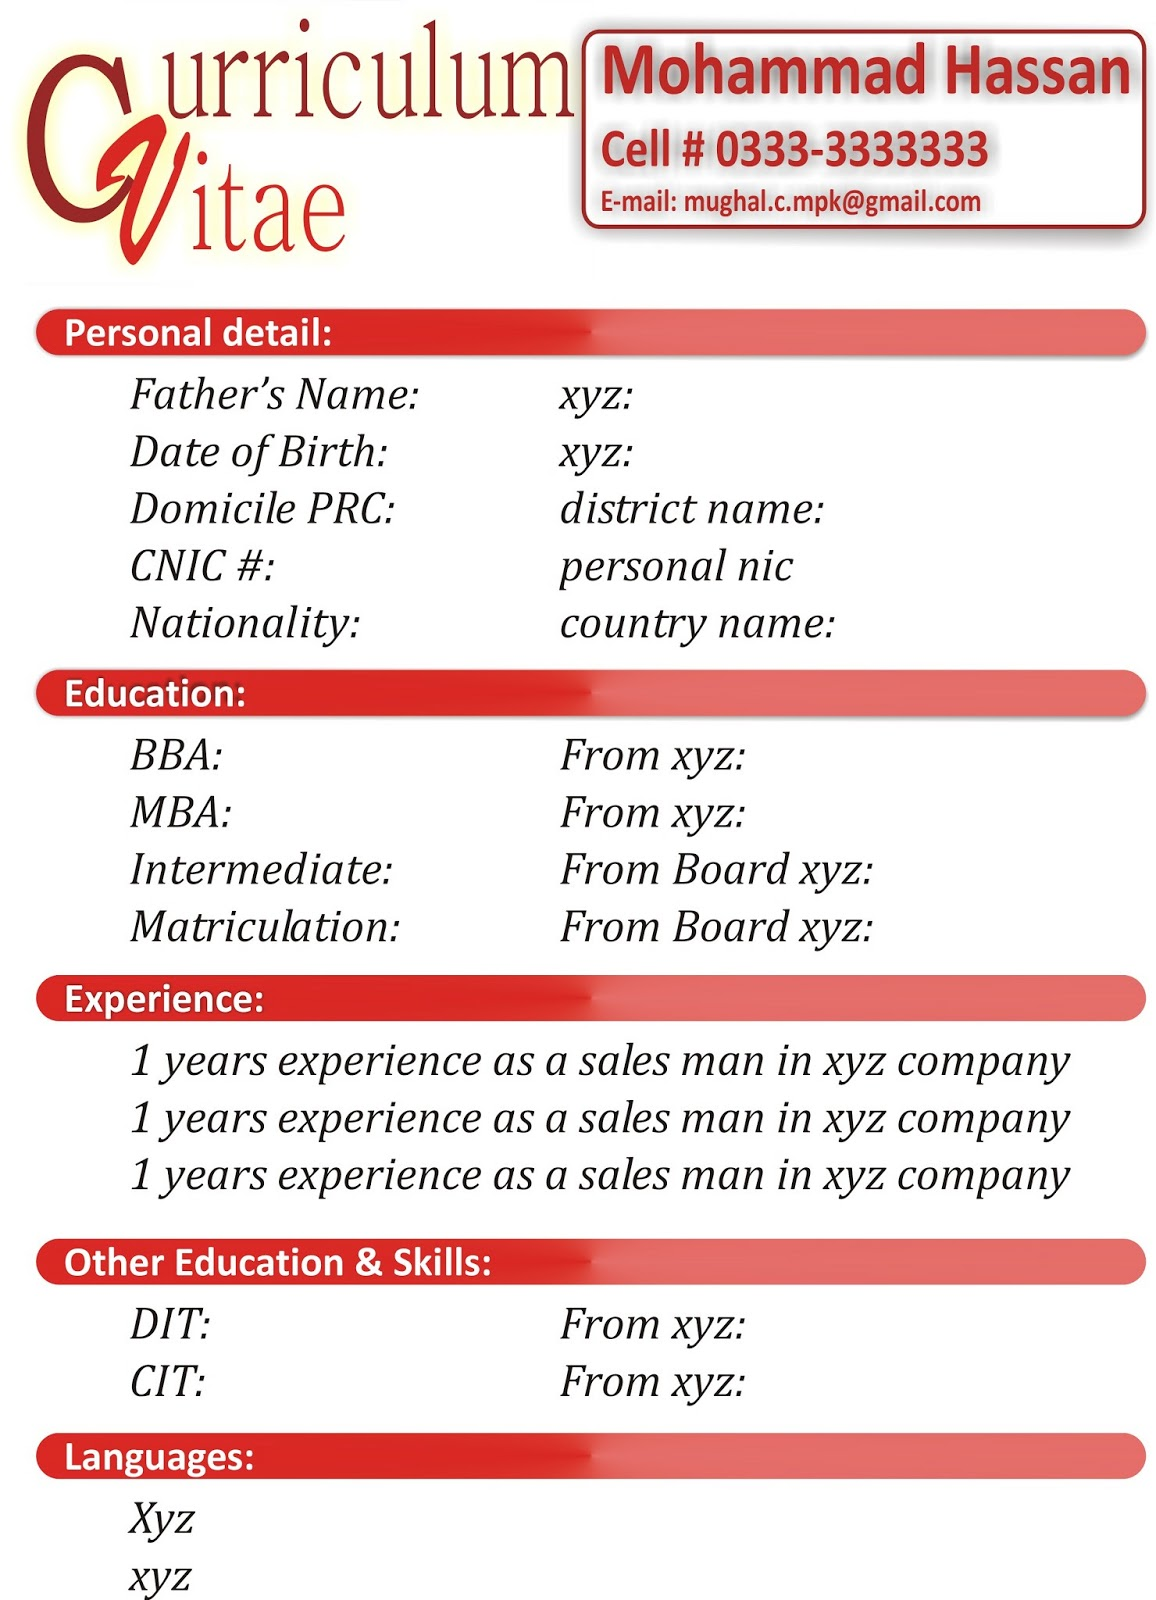 nice cv template doc best teh nice cv template doc the pdf version of this cv template is a learningteaching preparation